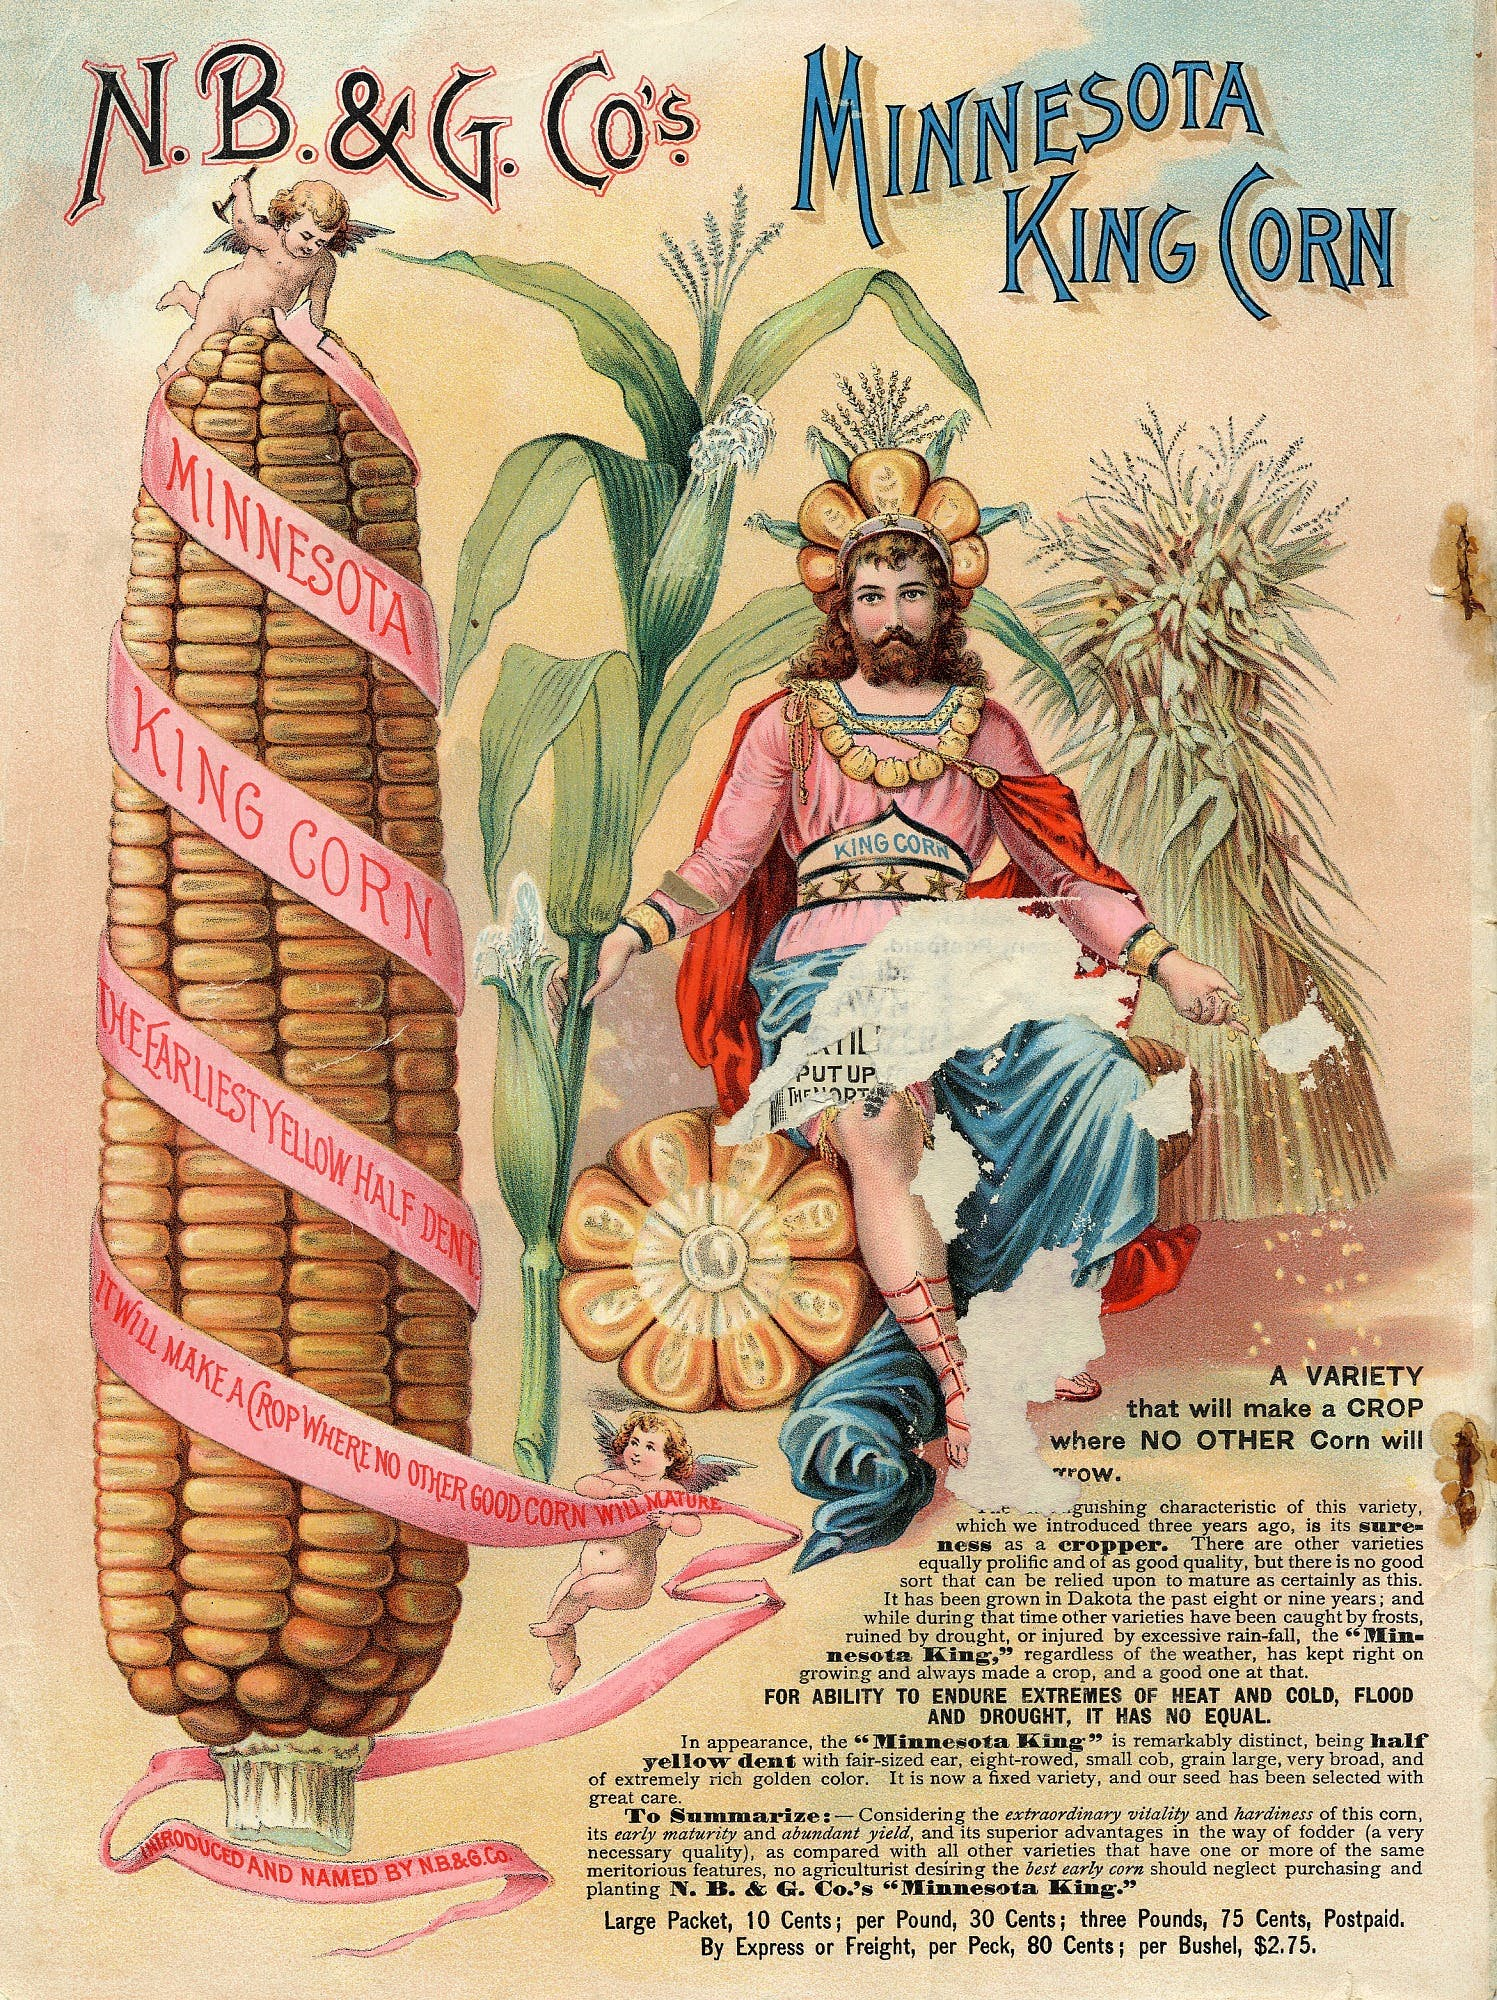 king next to corn, seed catalog image